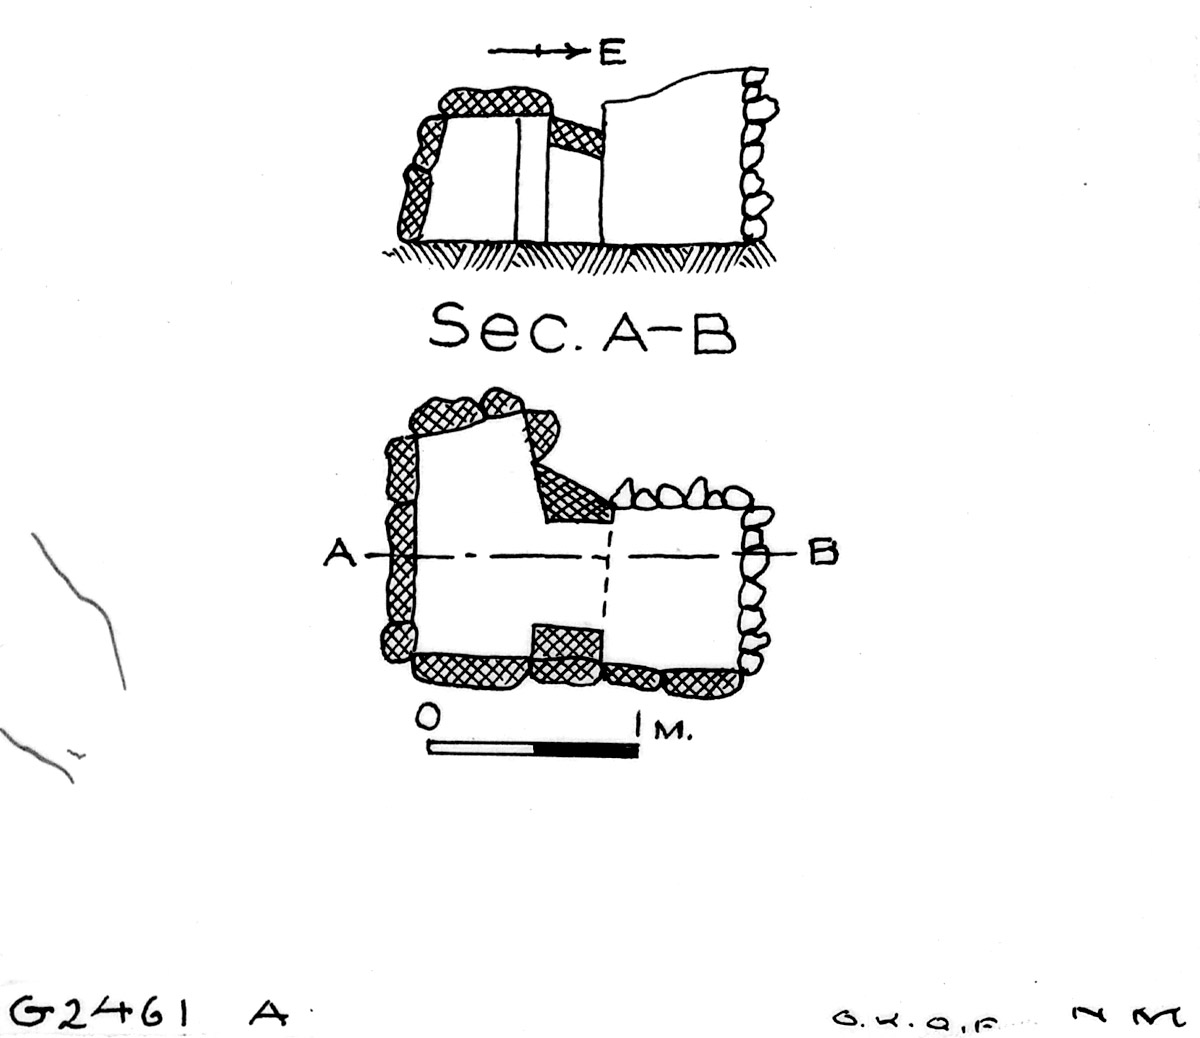 Maps and plans: G 2461, Shaft A